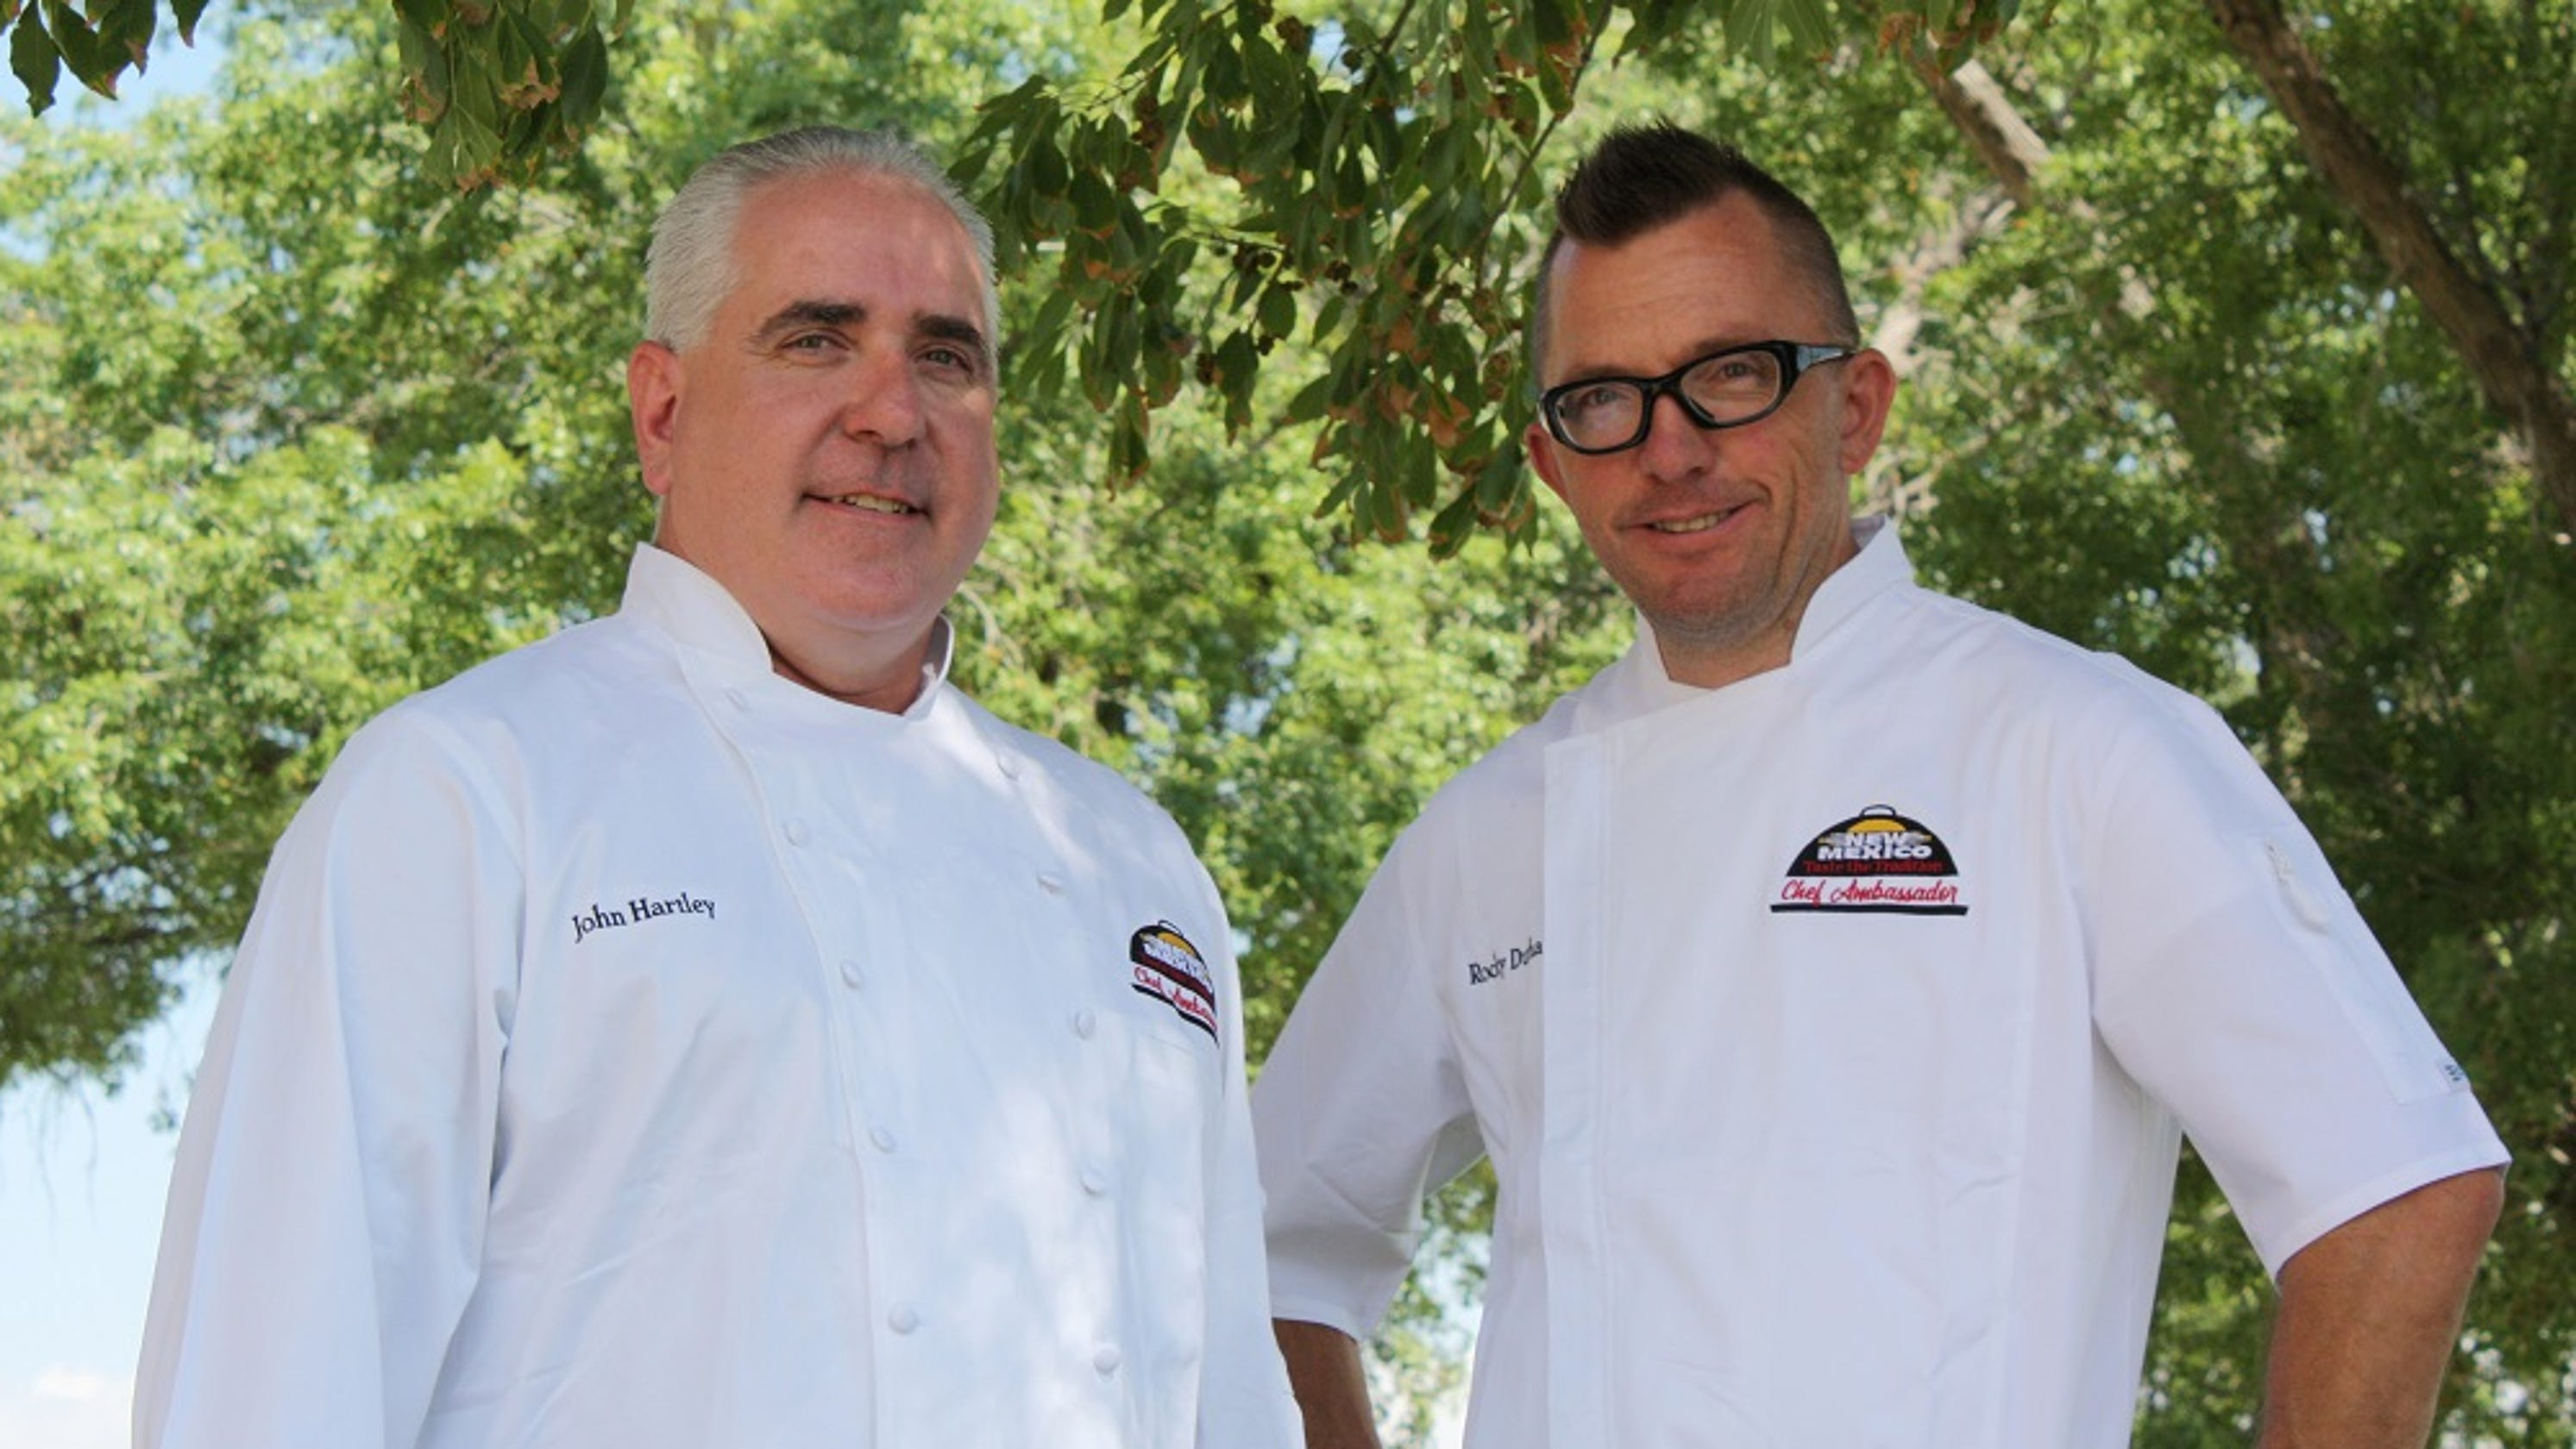 27d9b668a77 New Mexico Department of Agriculture announces first Chef Ambassadors